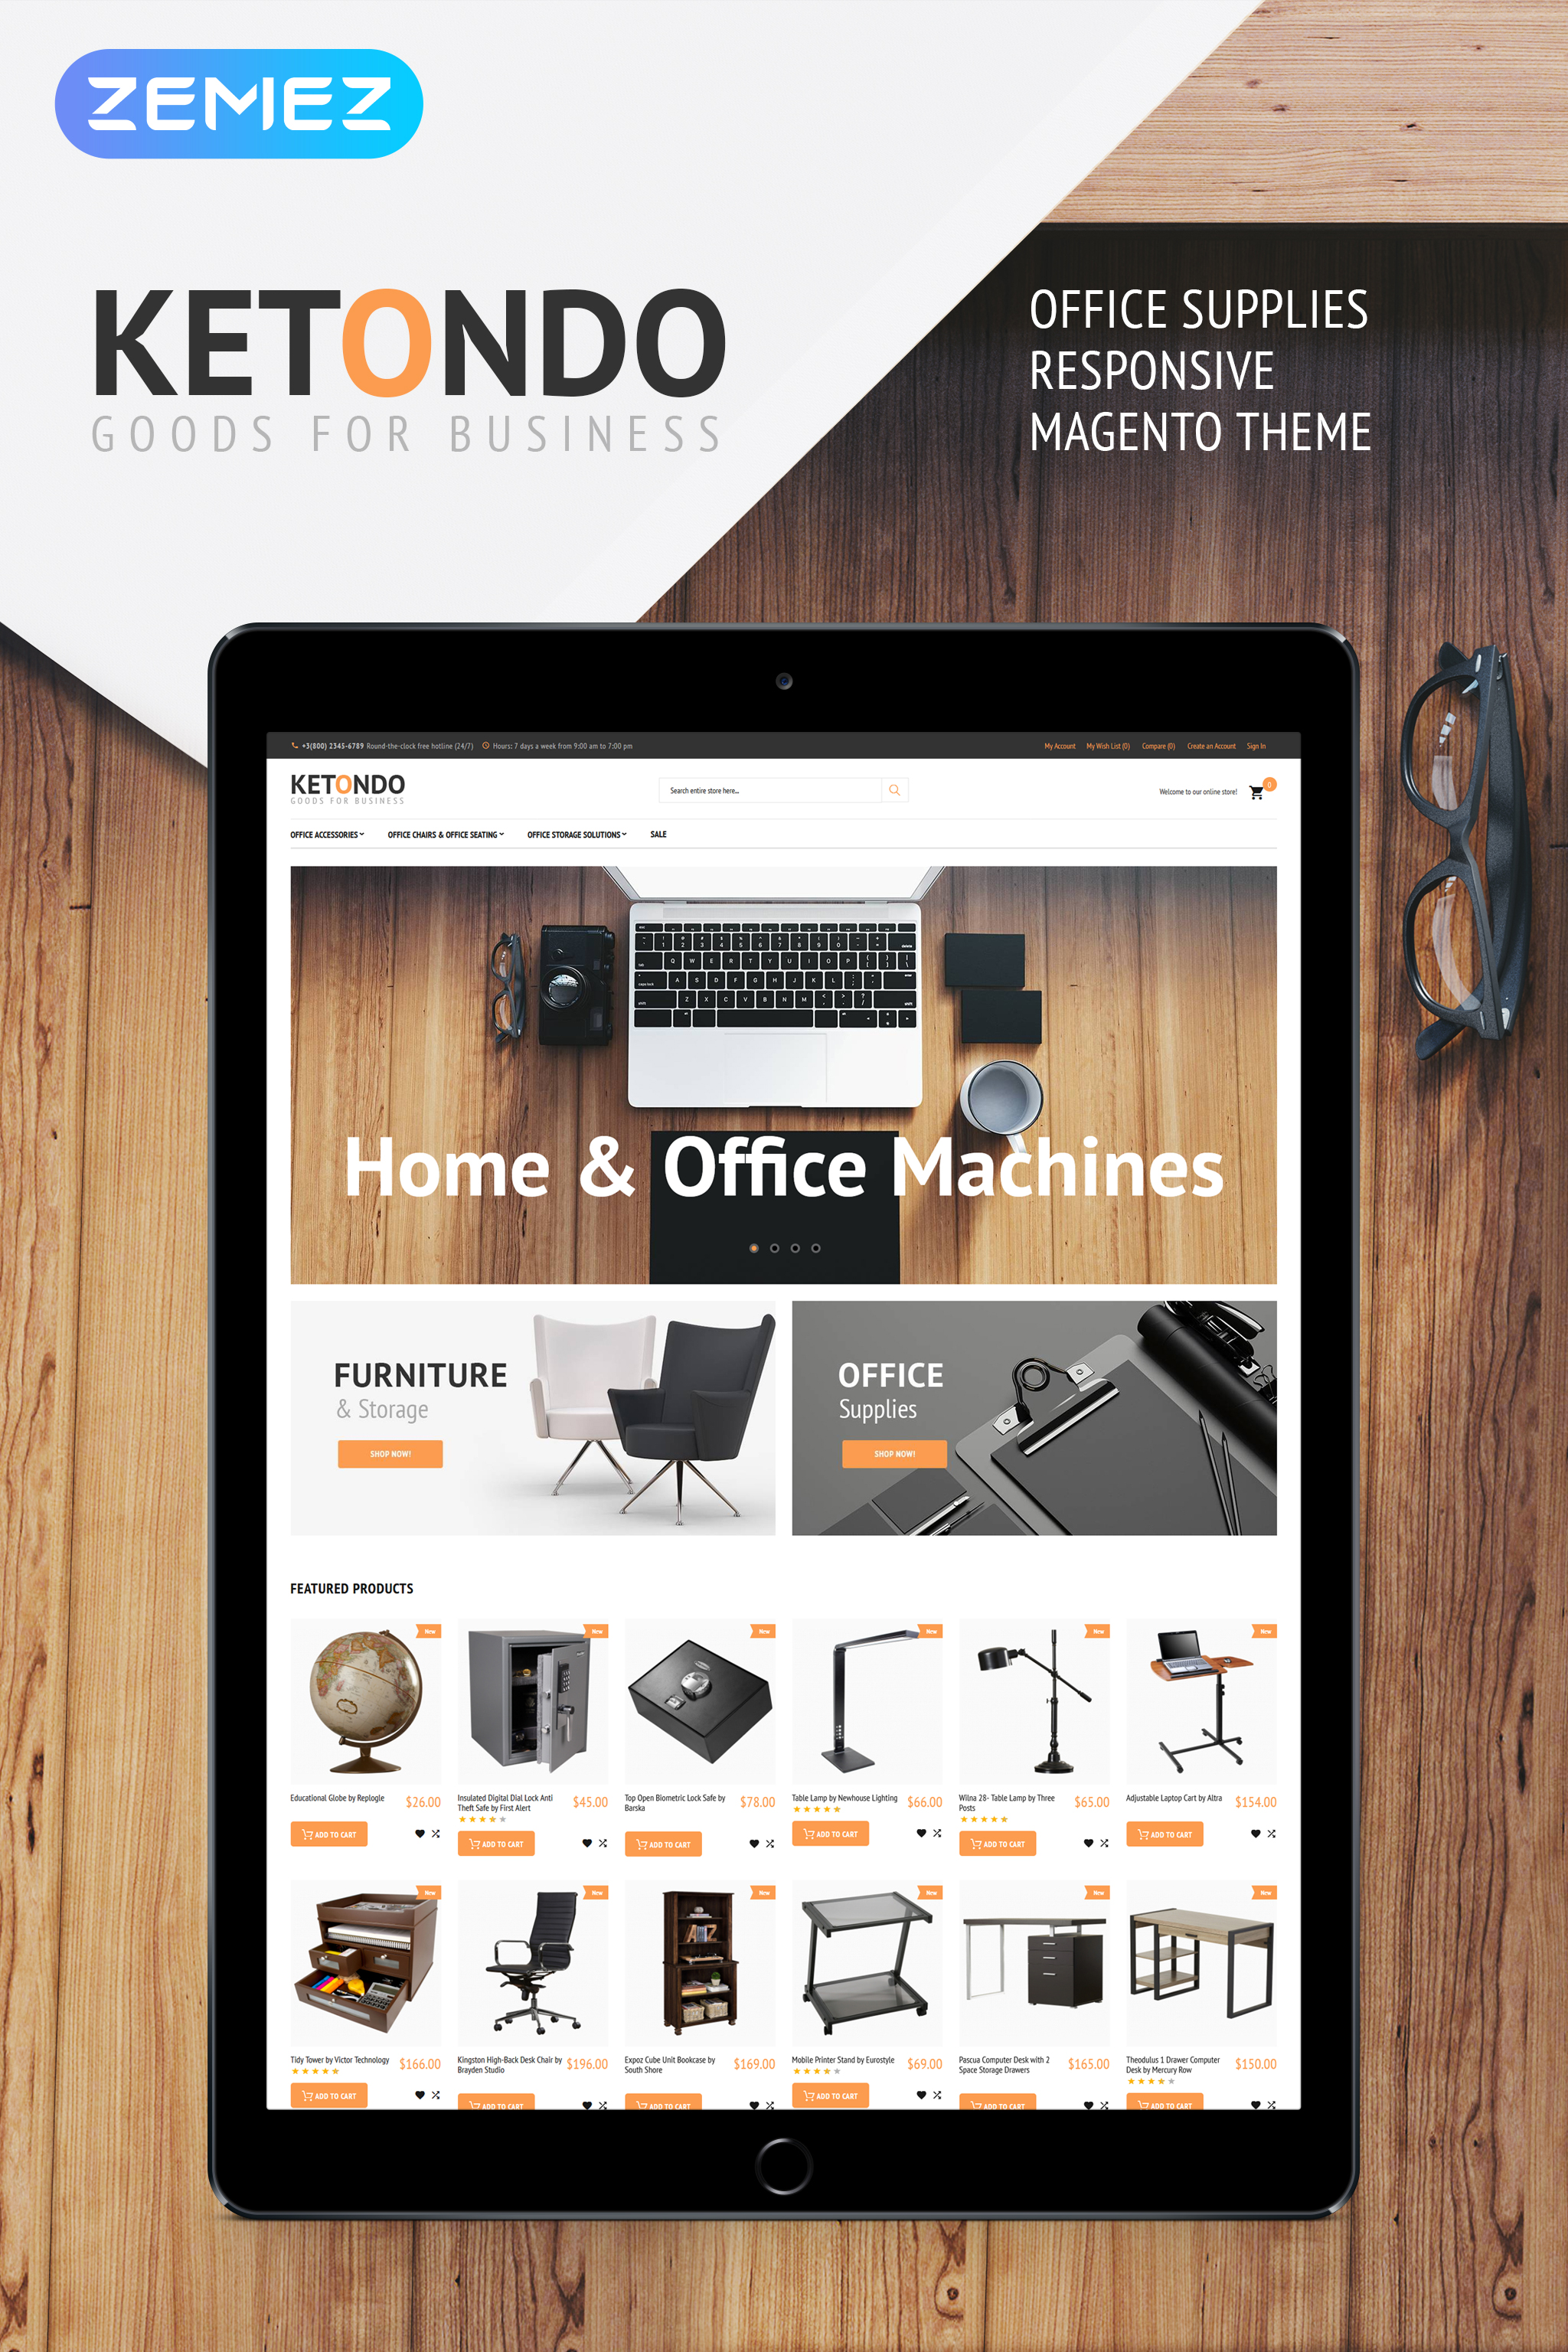 Ketondo - Office Supplies Magento Theme